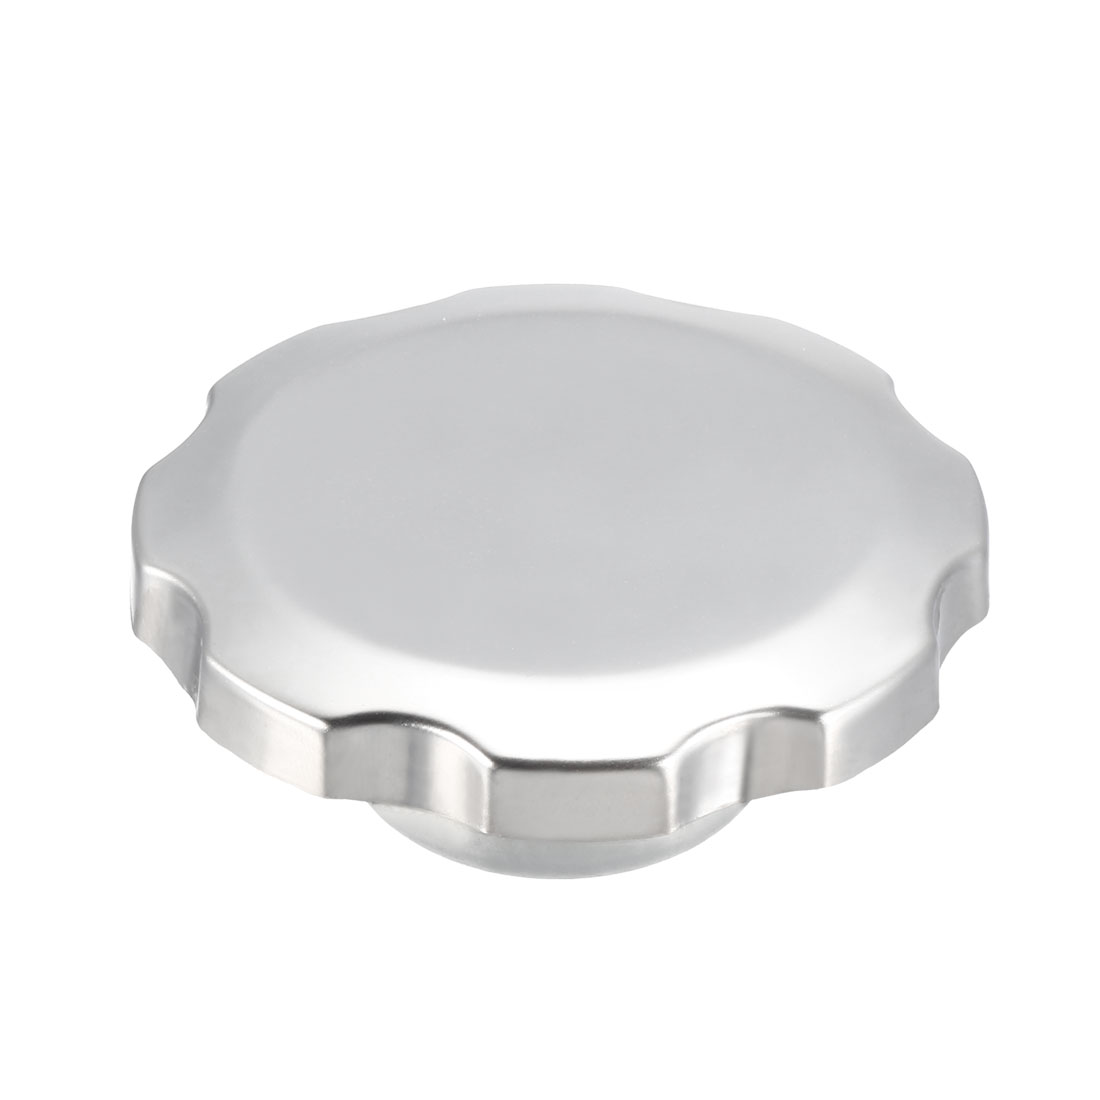 Replace Iron Fuel Tank Cap Fit for GX120 for GX160 for GX200 Engine Motors